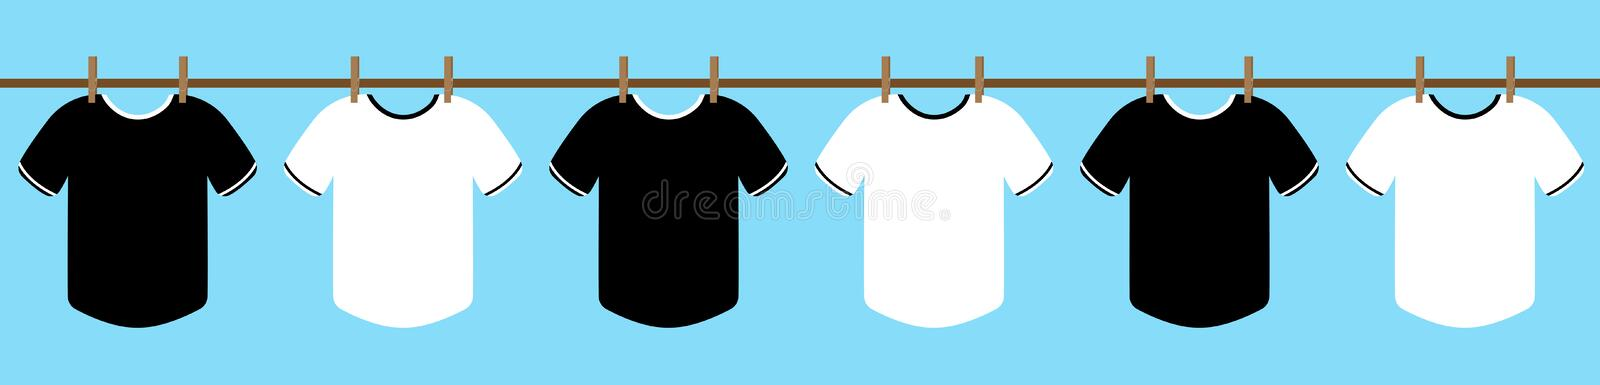 Black and white T-Shirt hang on the rope with Cloth clamp. dry clothes in the sun with the blue sky. illustration. vector. vector illustration